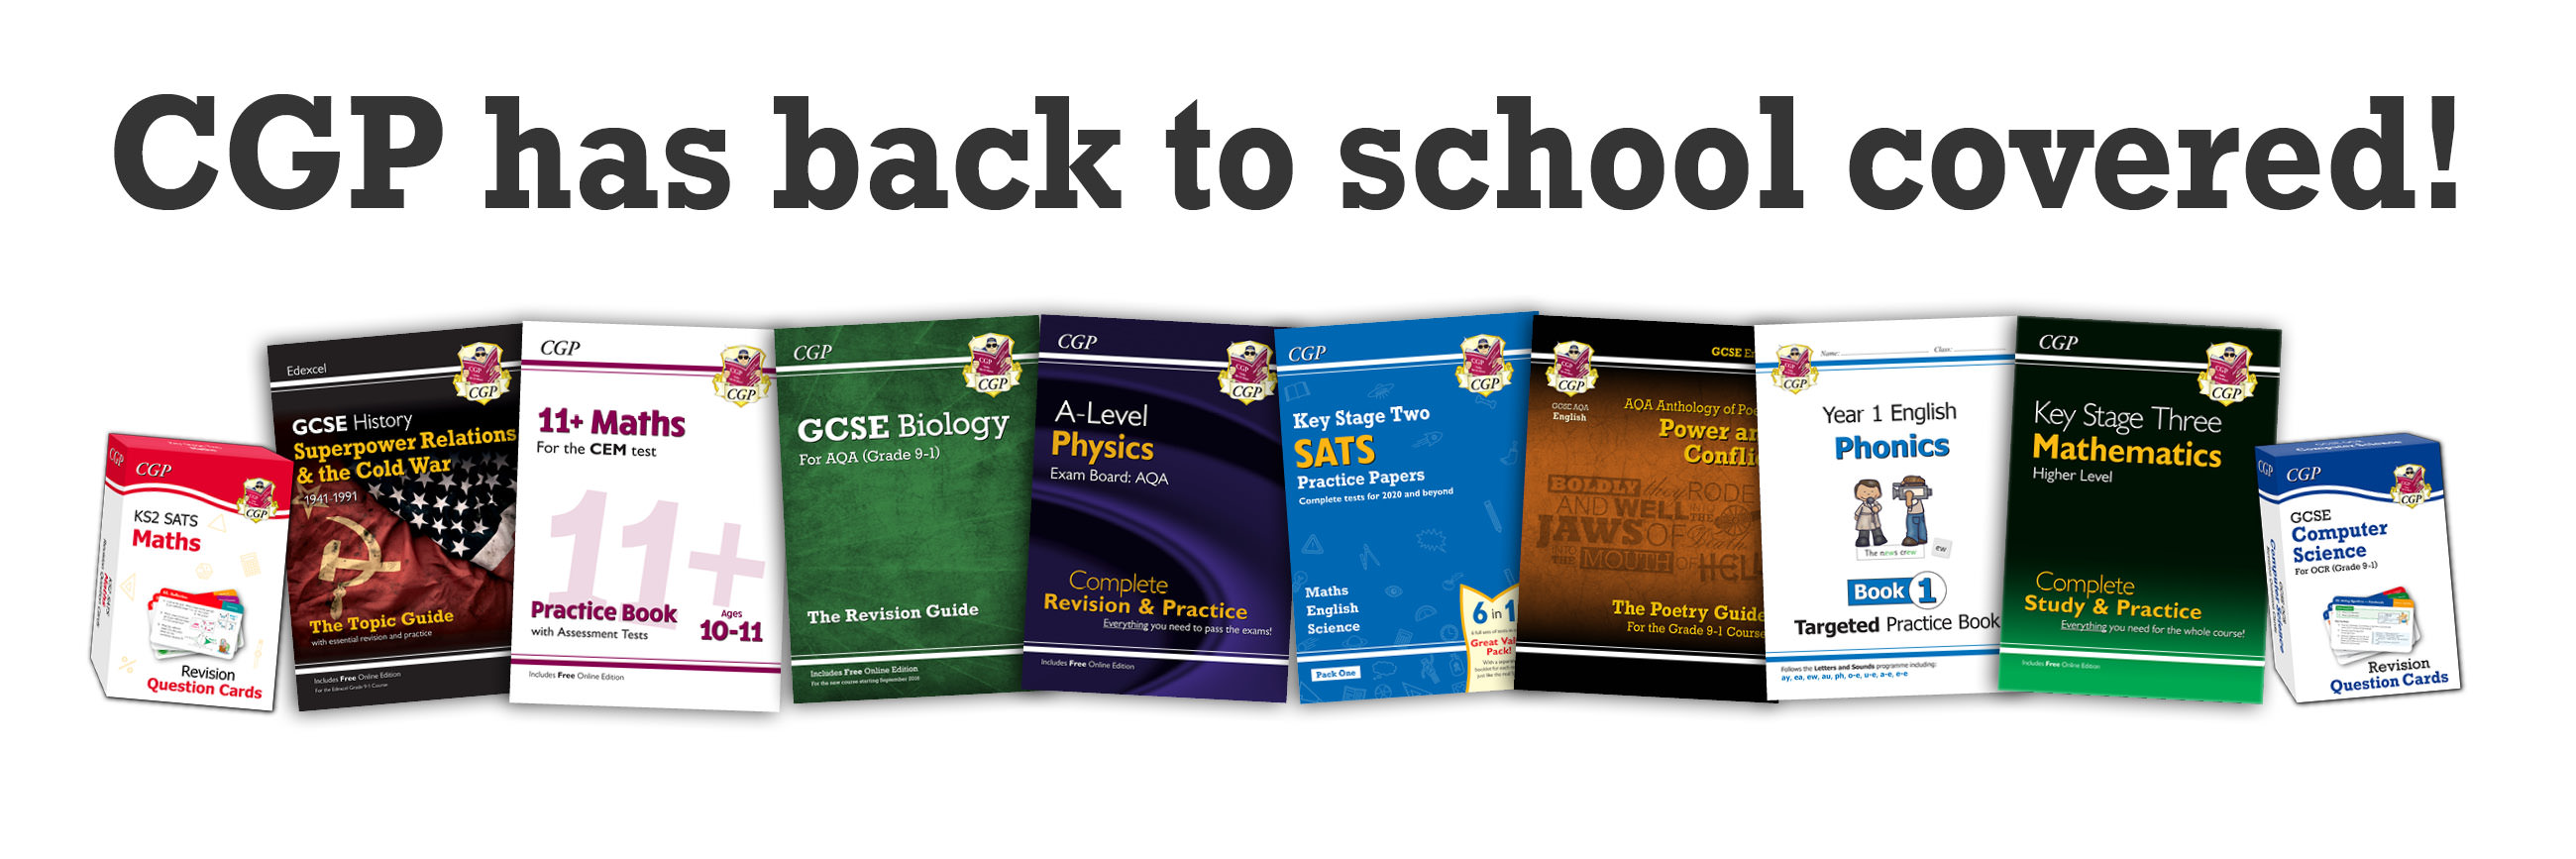 CGP has back to school covered